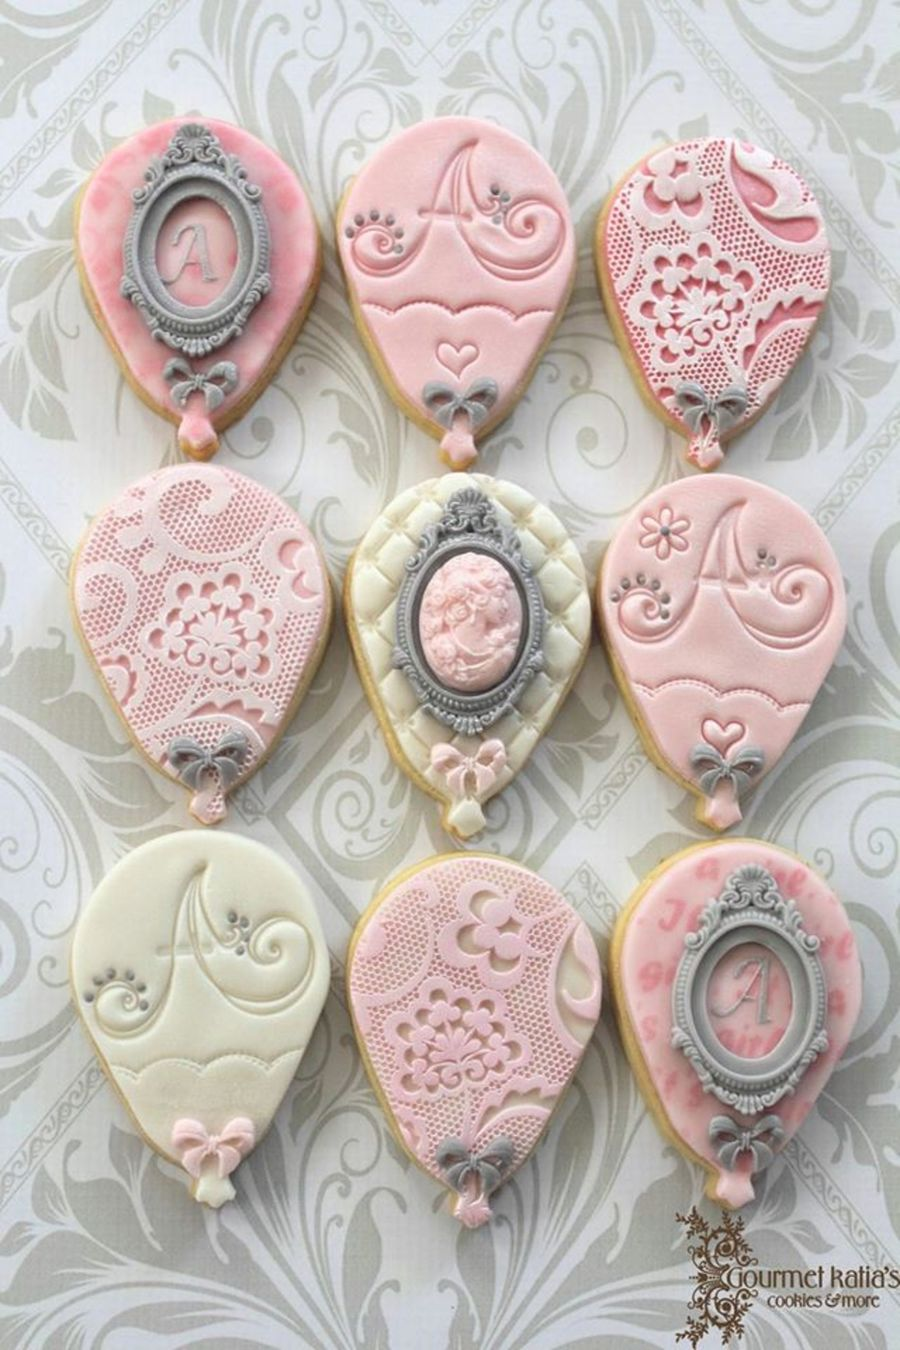 Shabby Chic Balloons! on Cake Central